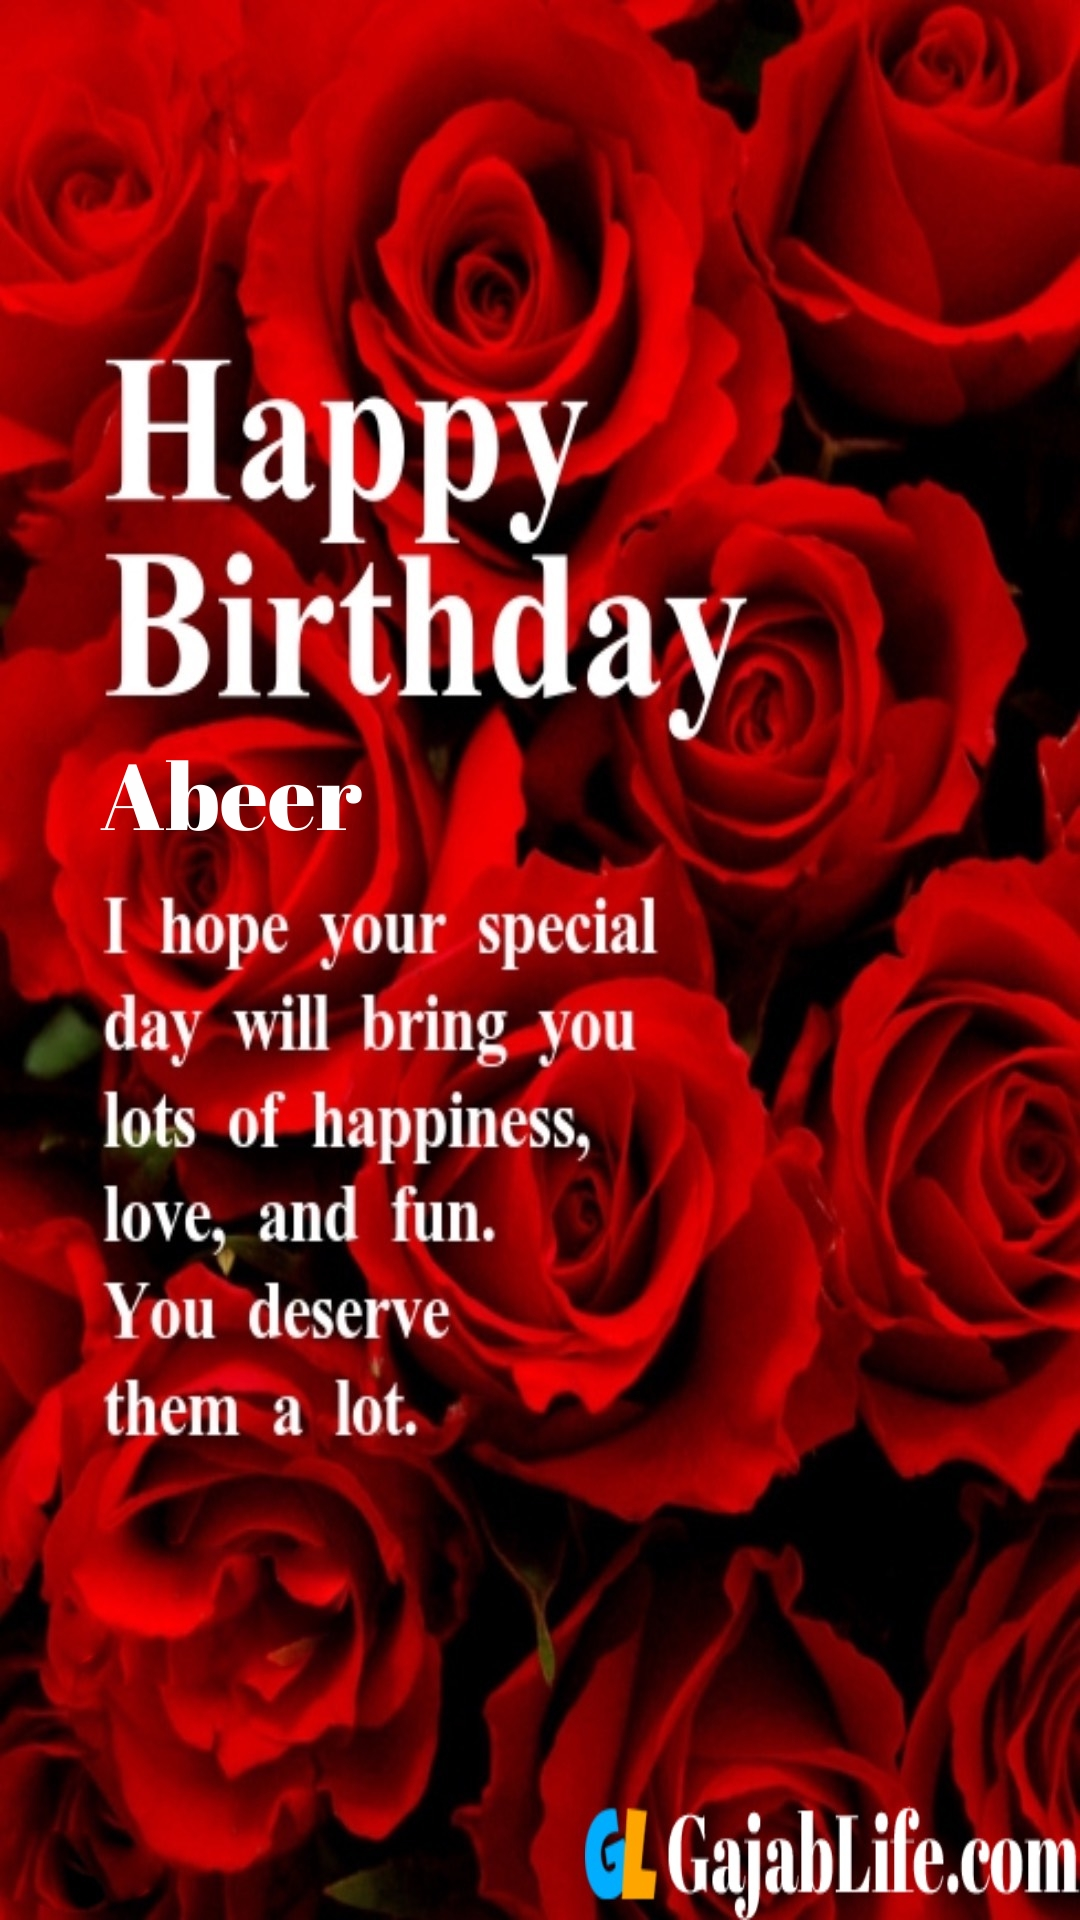 Abeer birthday greeting card with rose & love